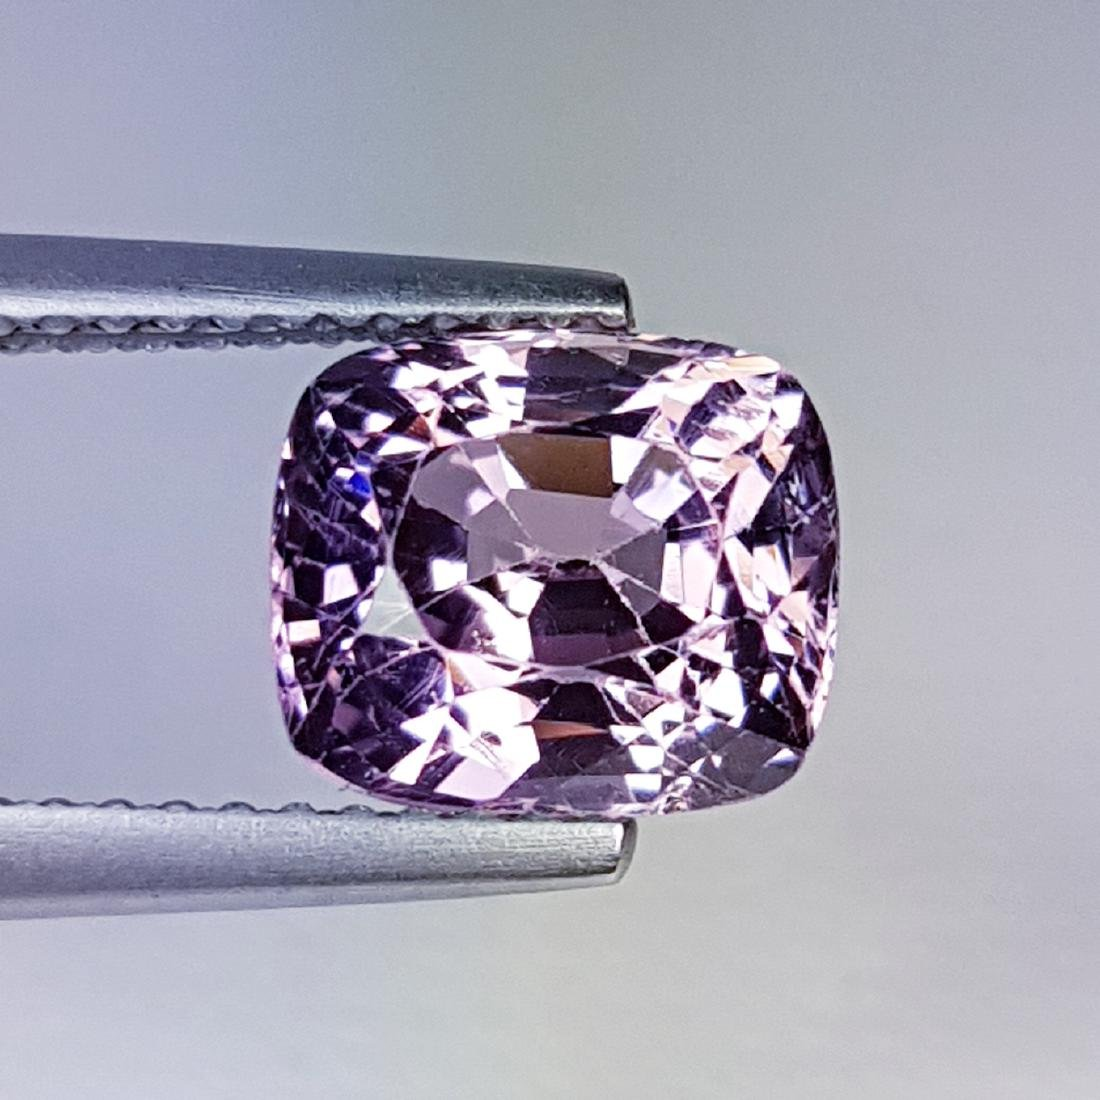 2.75 ct Exclusive Gem Cushion Cut Natural Spinel - 3